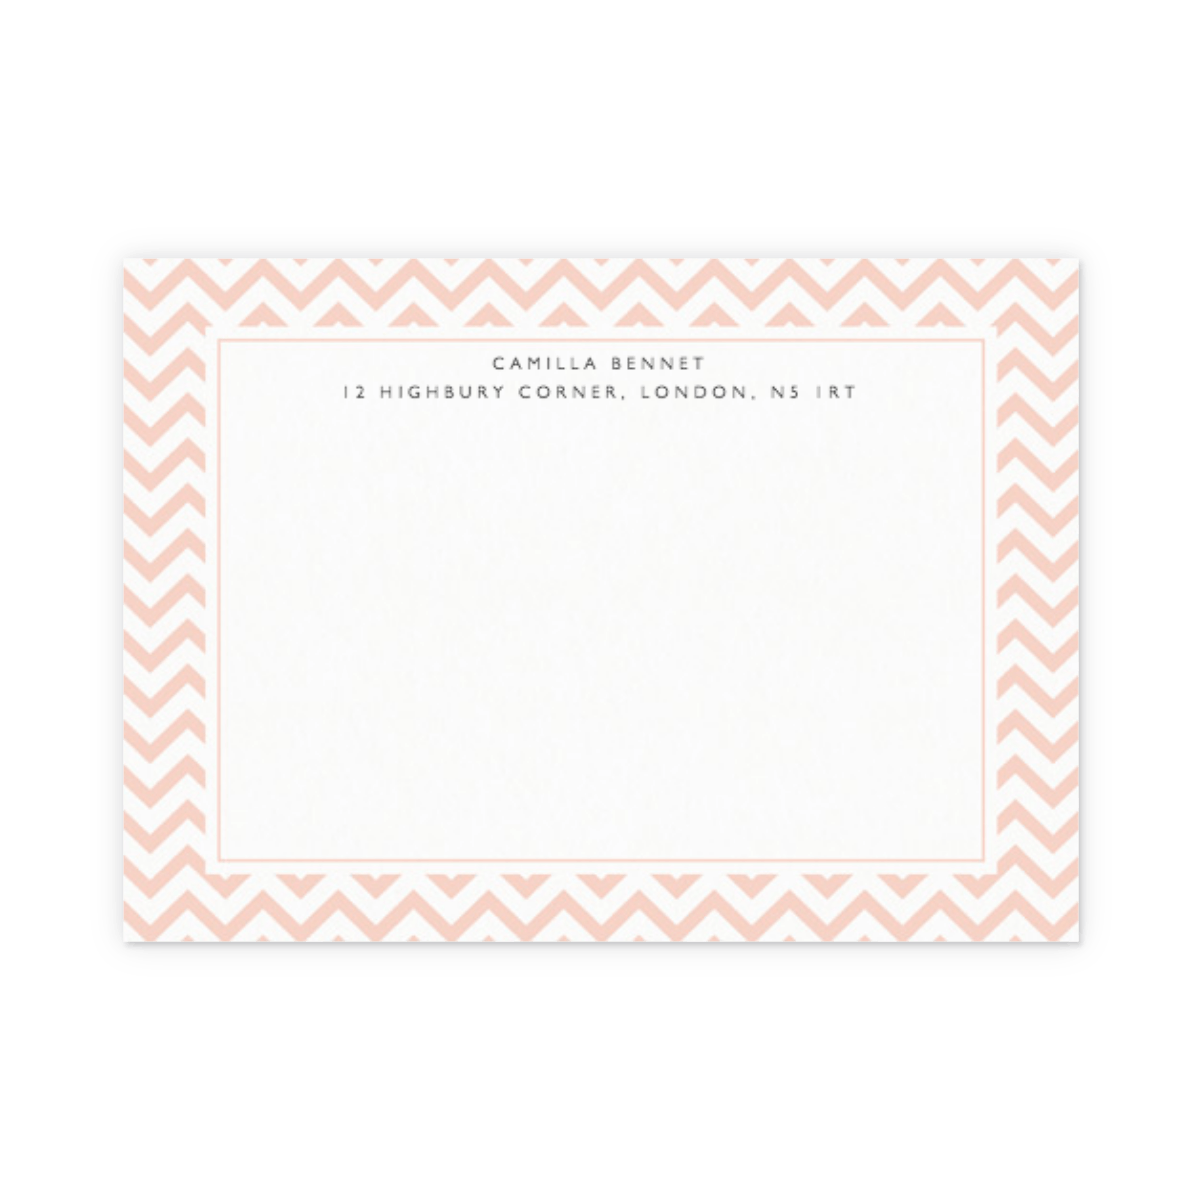 Https%3a%2f%2fwww.papier.com%2fproduct image%2f3550%2f10%2fpeach chevrons 947 front 1534936927.png?ixlib=rb 1.1